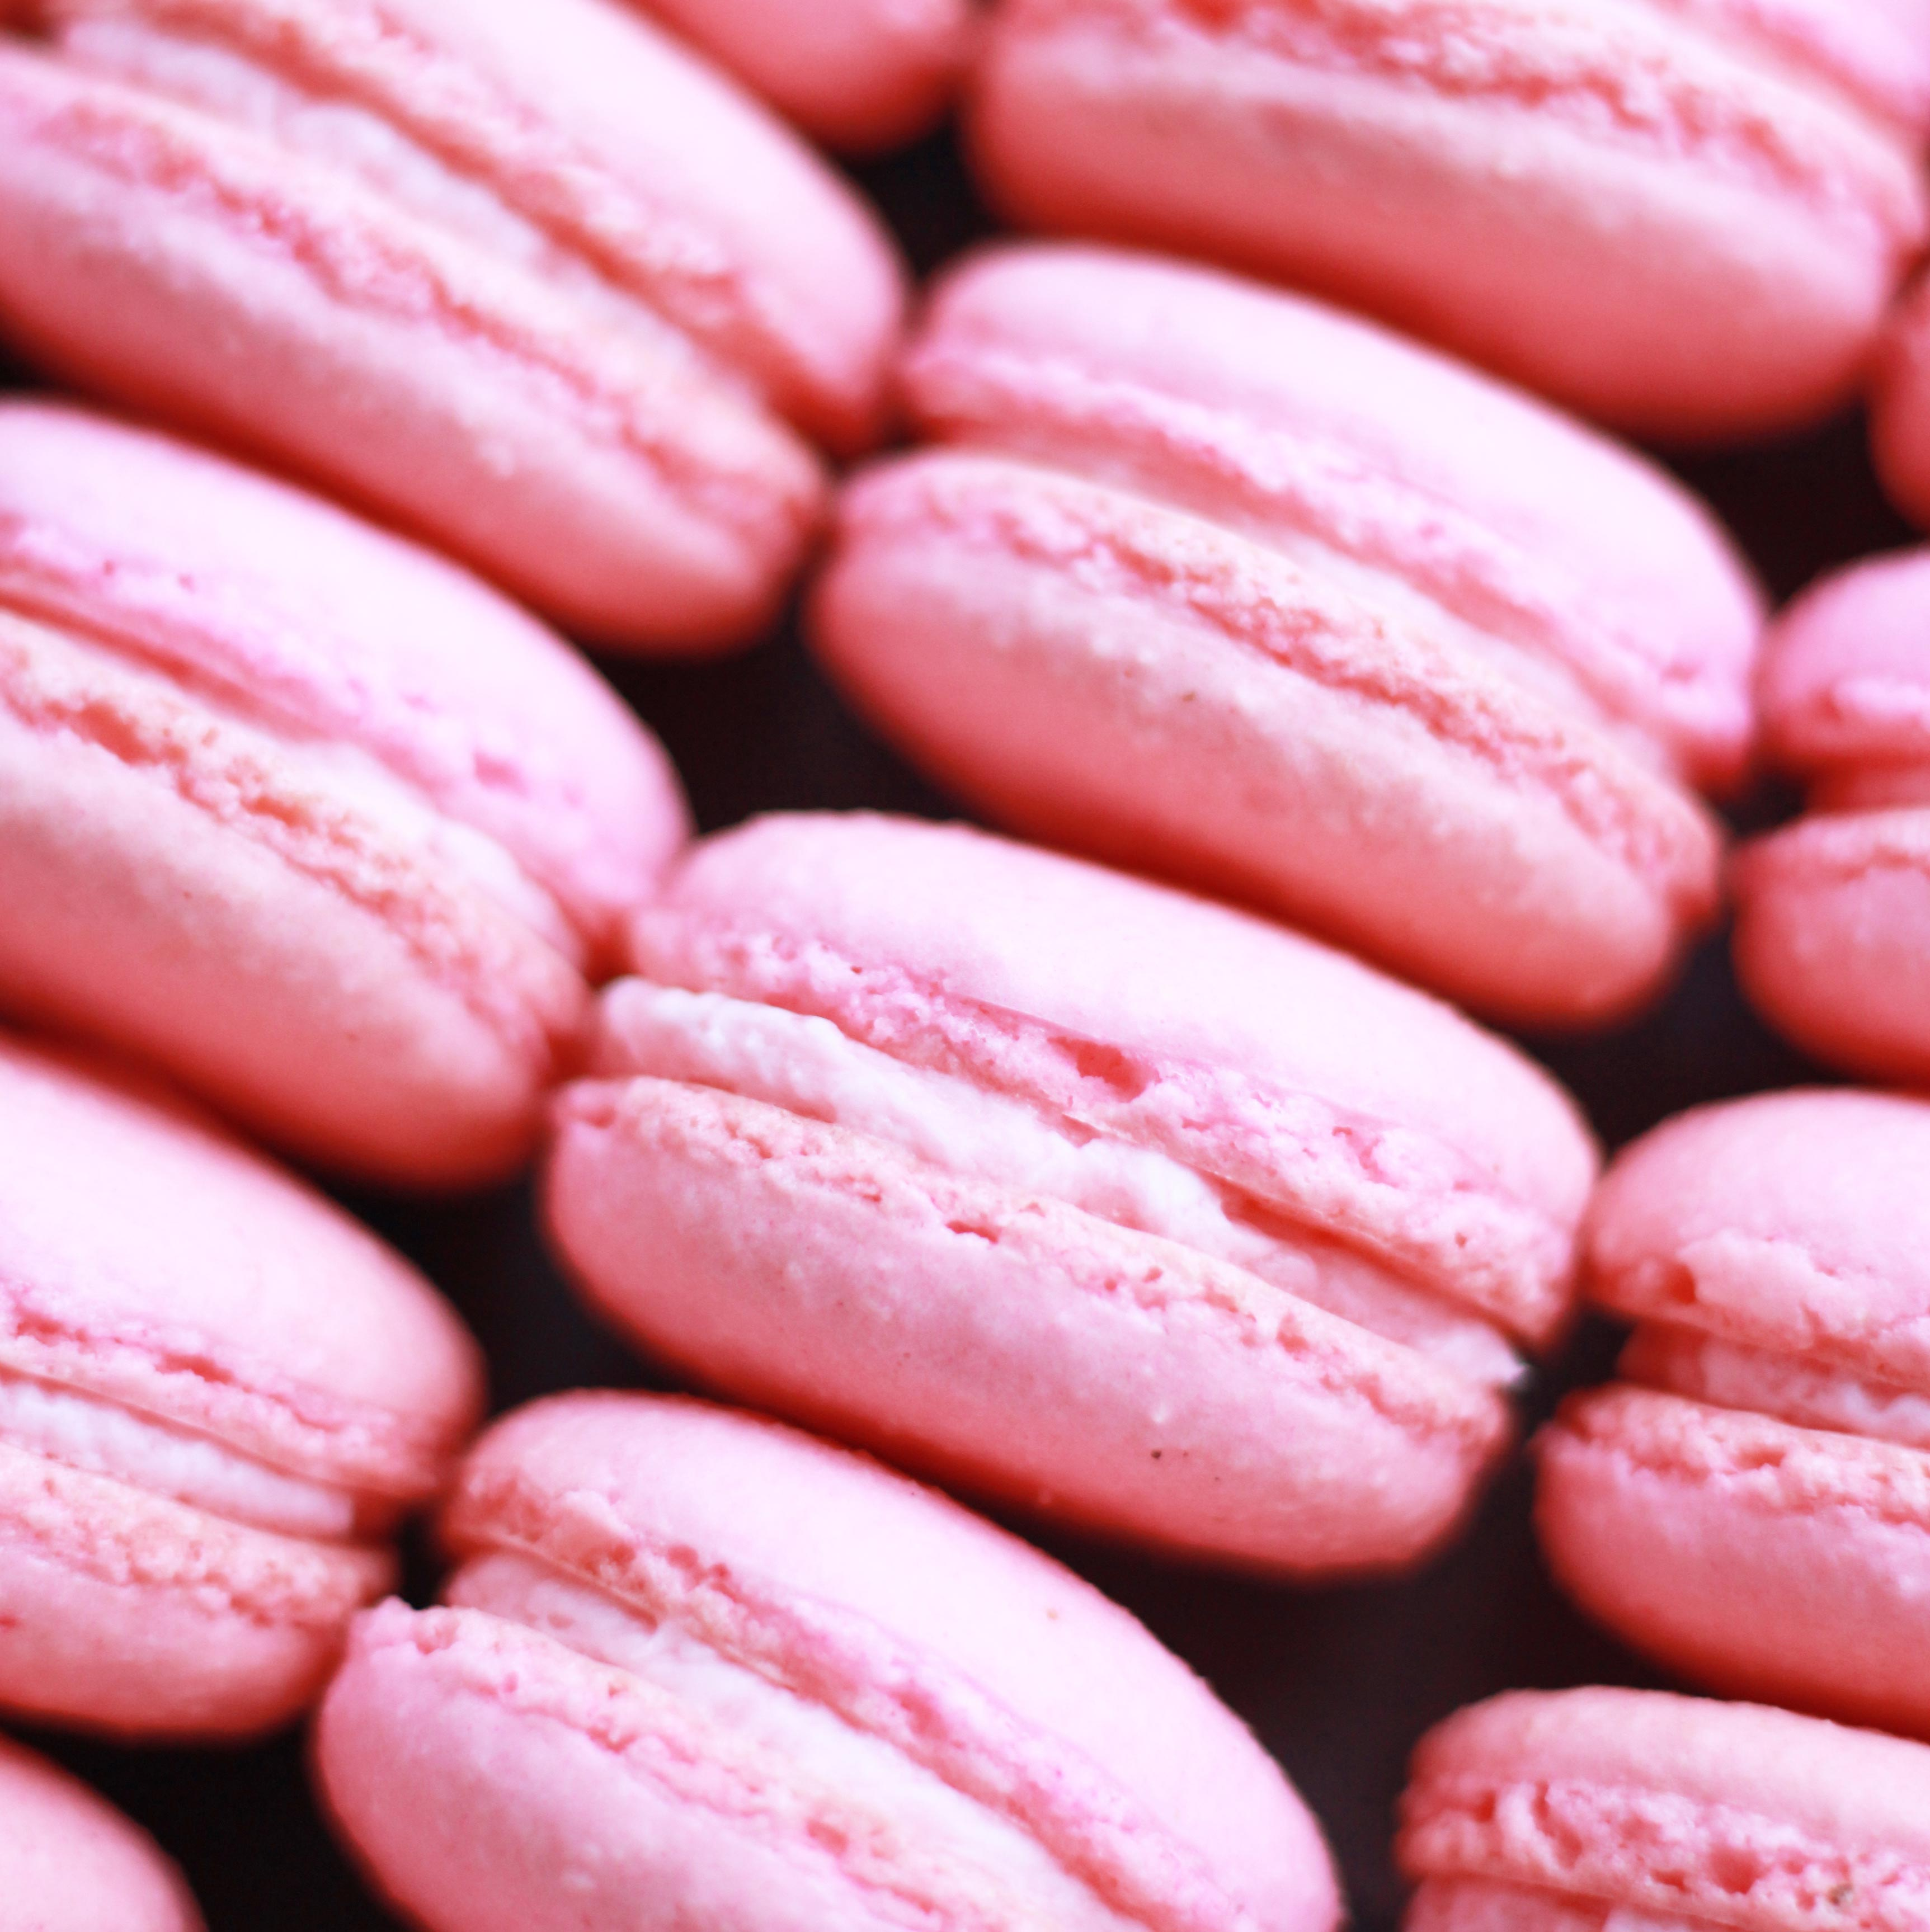 raspberry macarons from Pierrot Catering in New Jersey